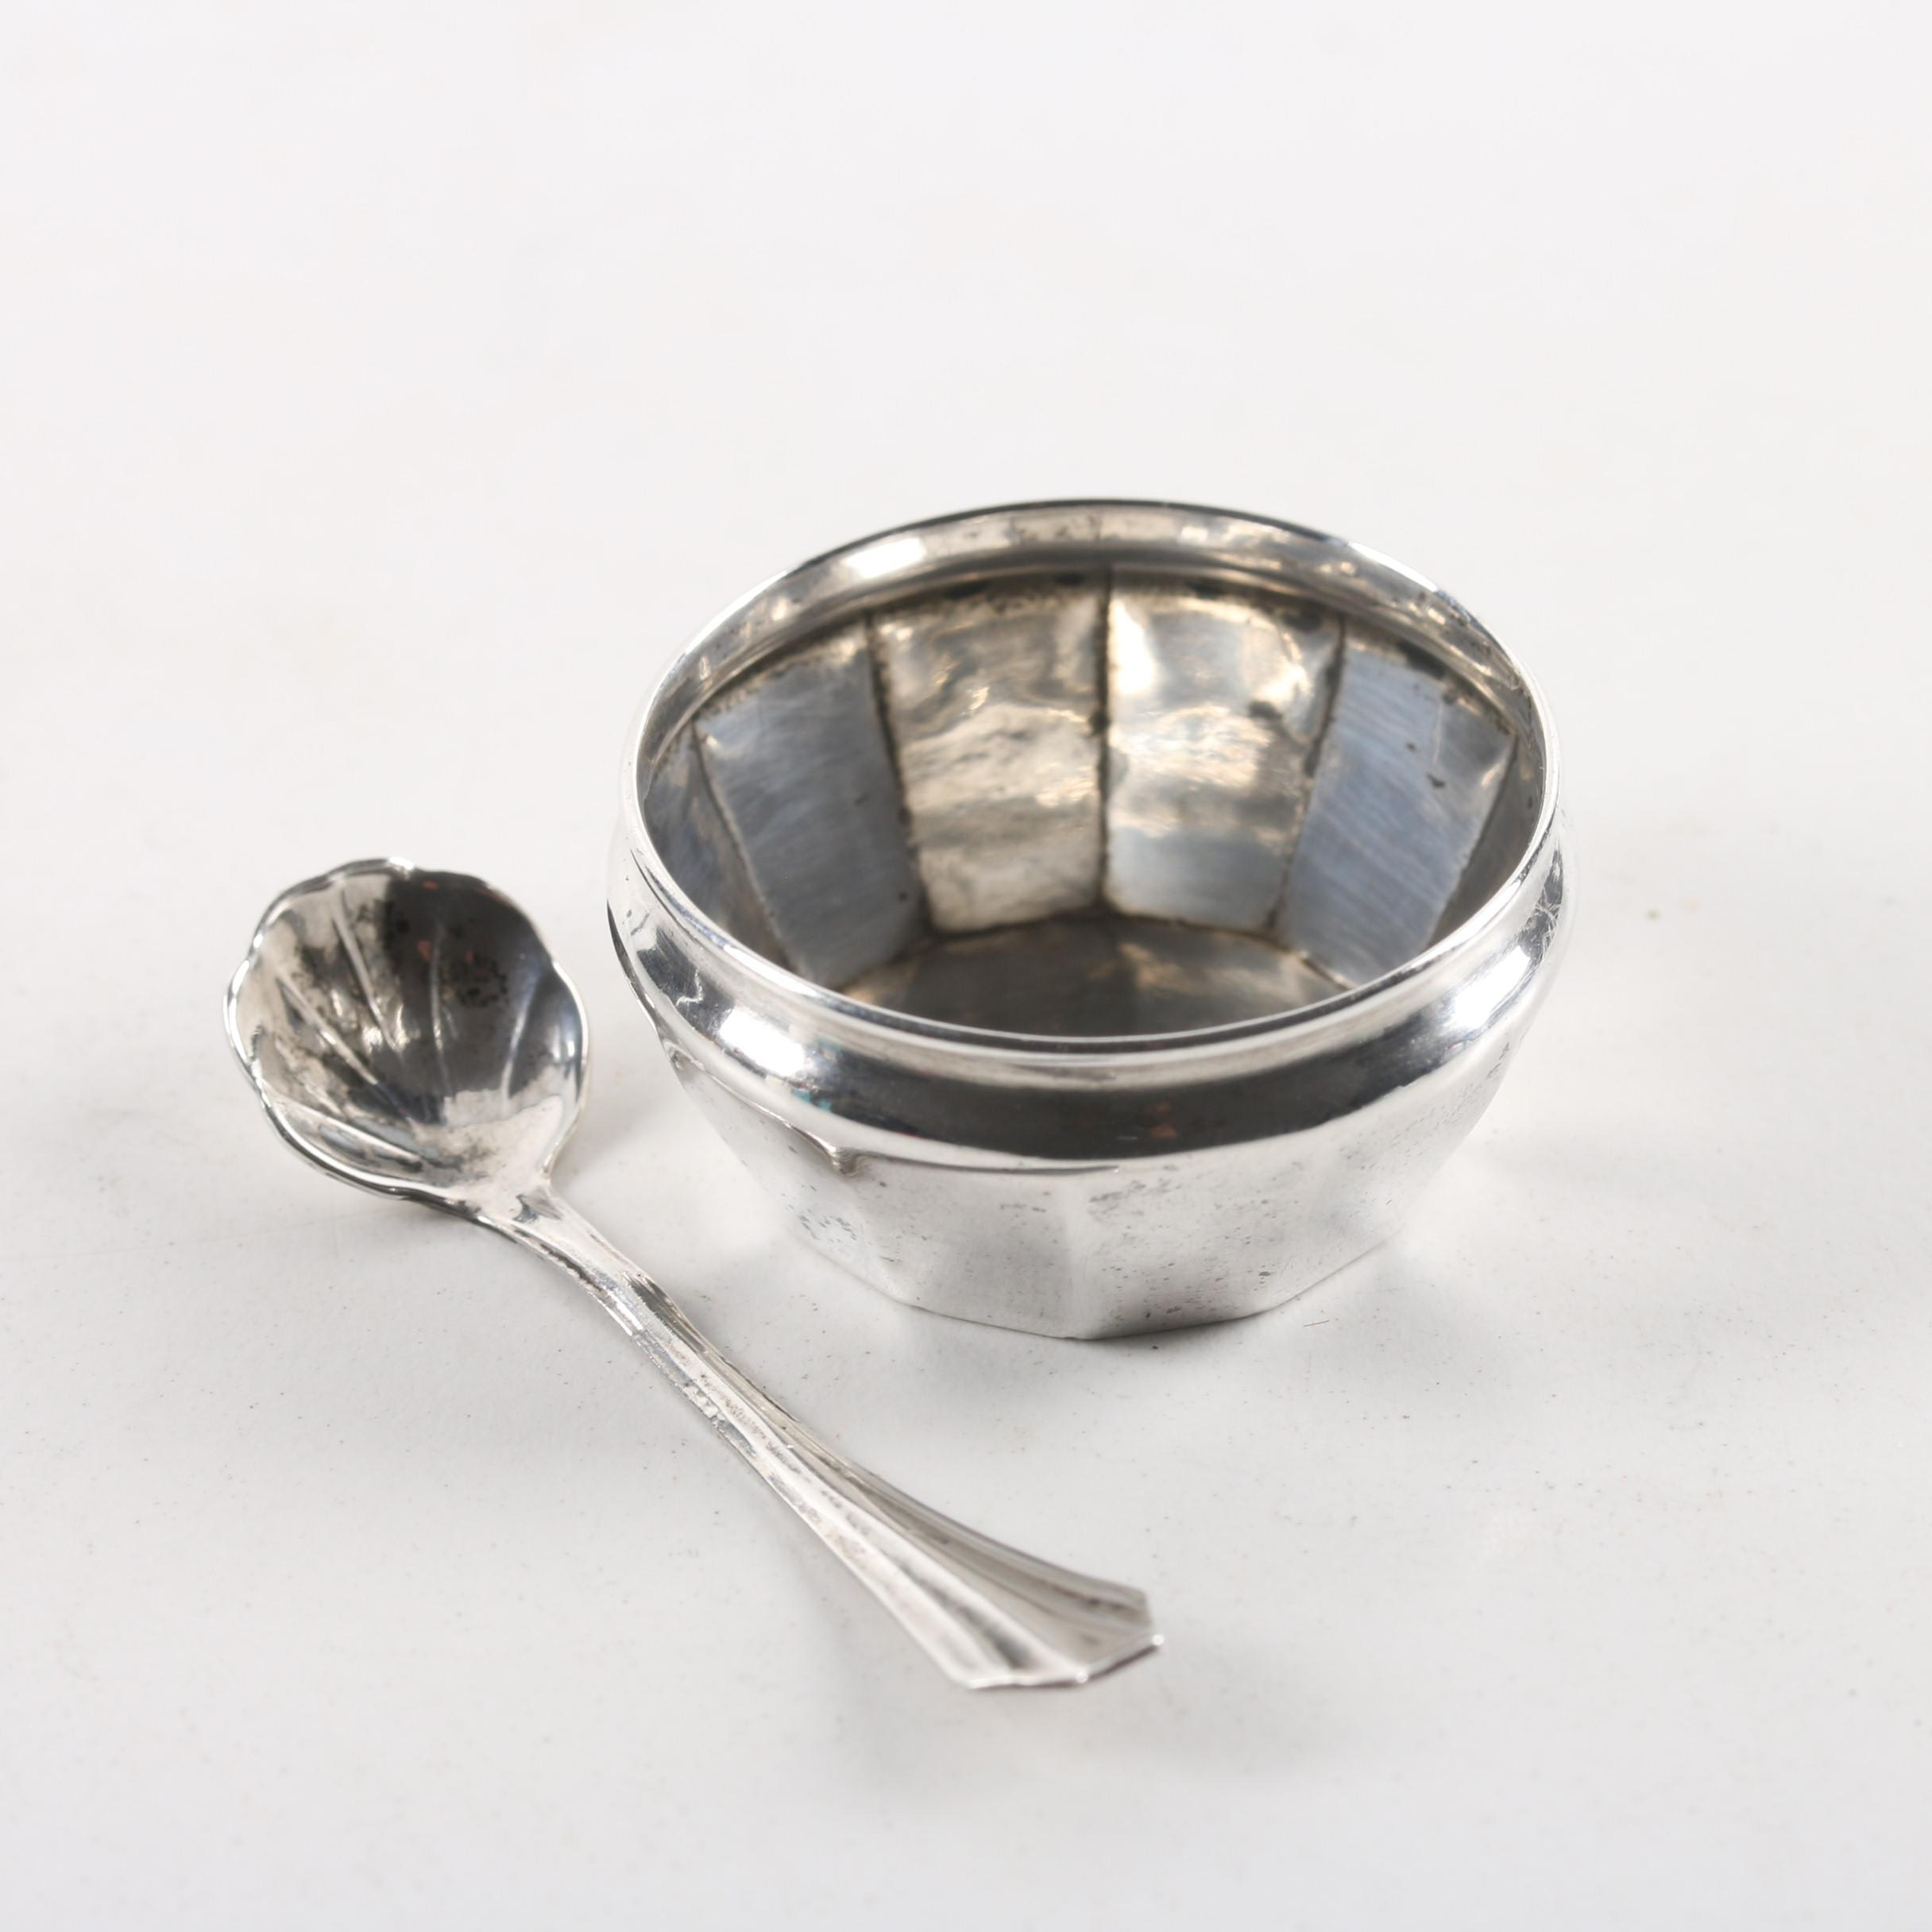 Webster Co. Sterling Silver Salt Cellar and Shell Style Salt Spoon